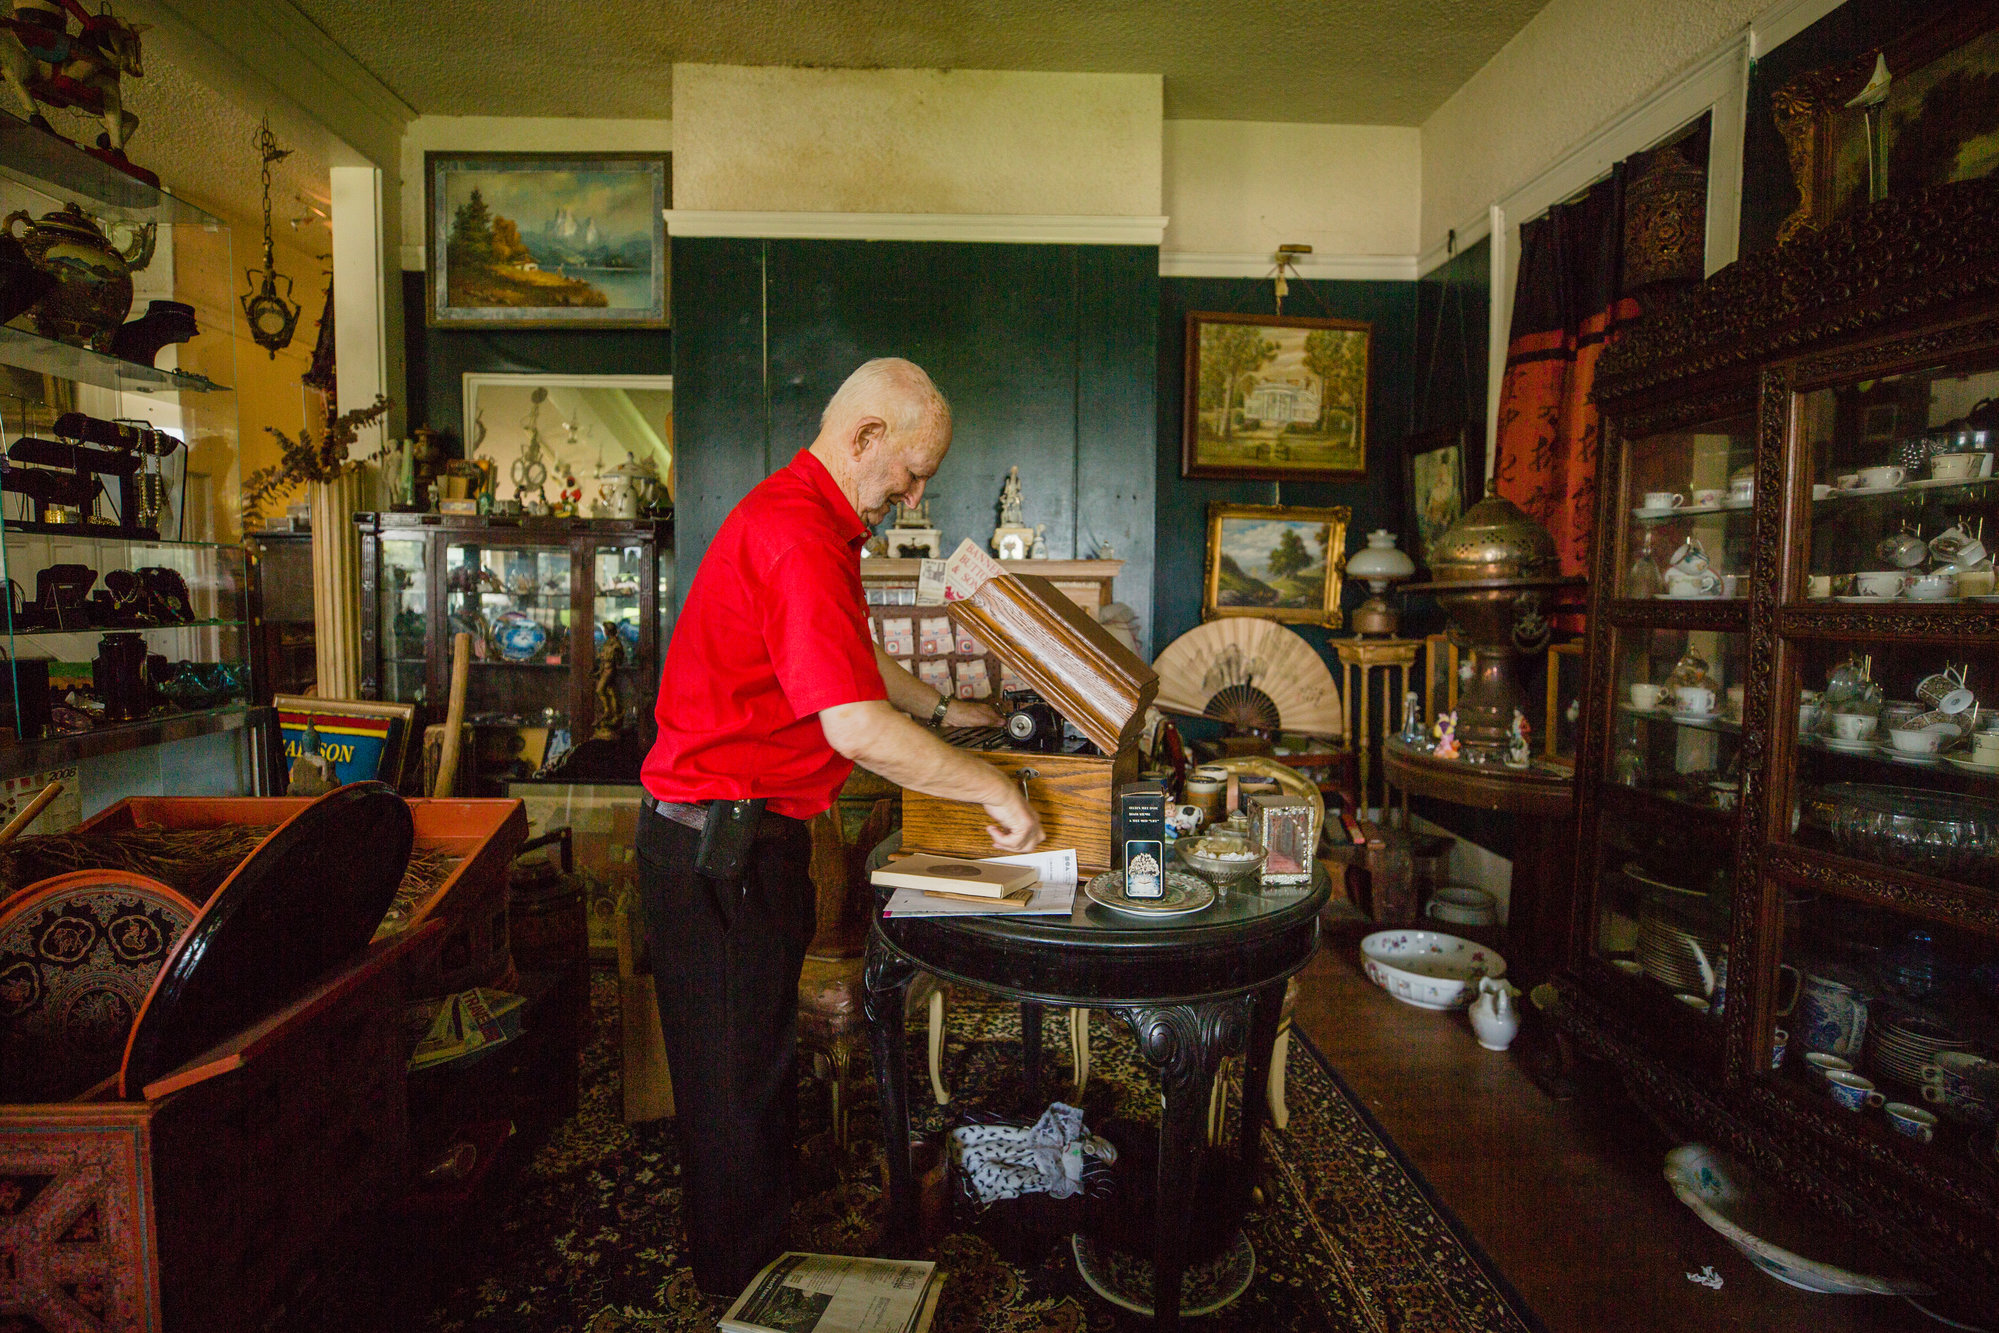 Don Cann plays an original Edison phonograph in his museum on Broad Street in Sumter.